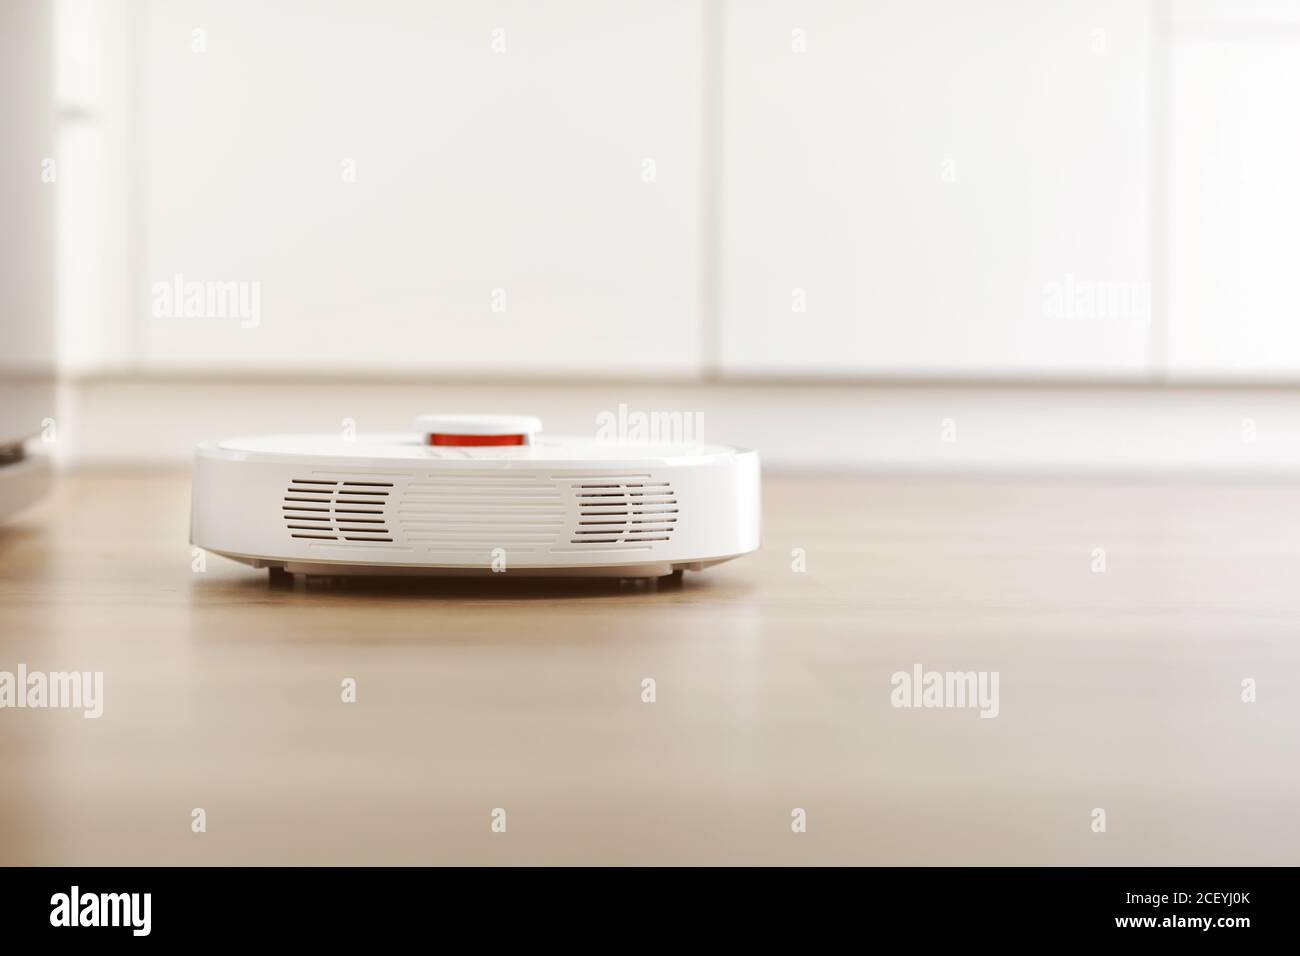 White robotic vacuum cleaner on laminate floor cleaning dust in living room interior. Smart electronic housekeeping technology. smart home Stock Photo